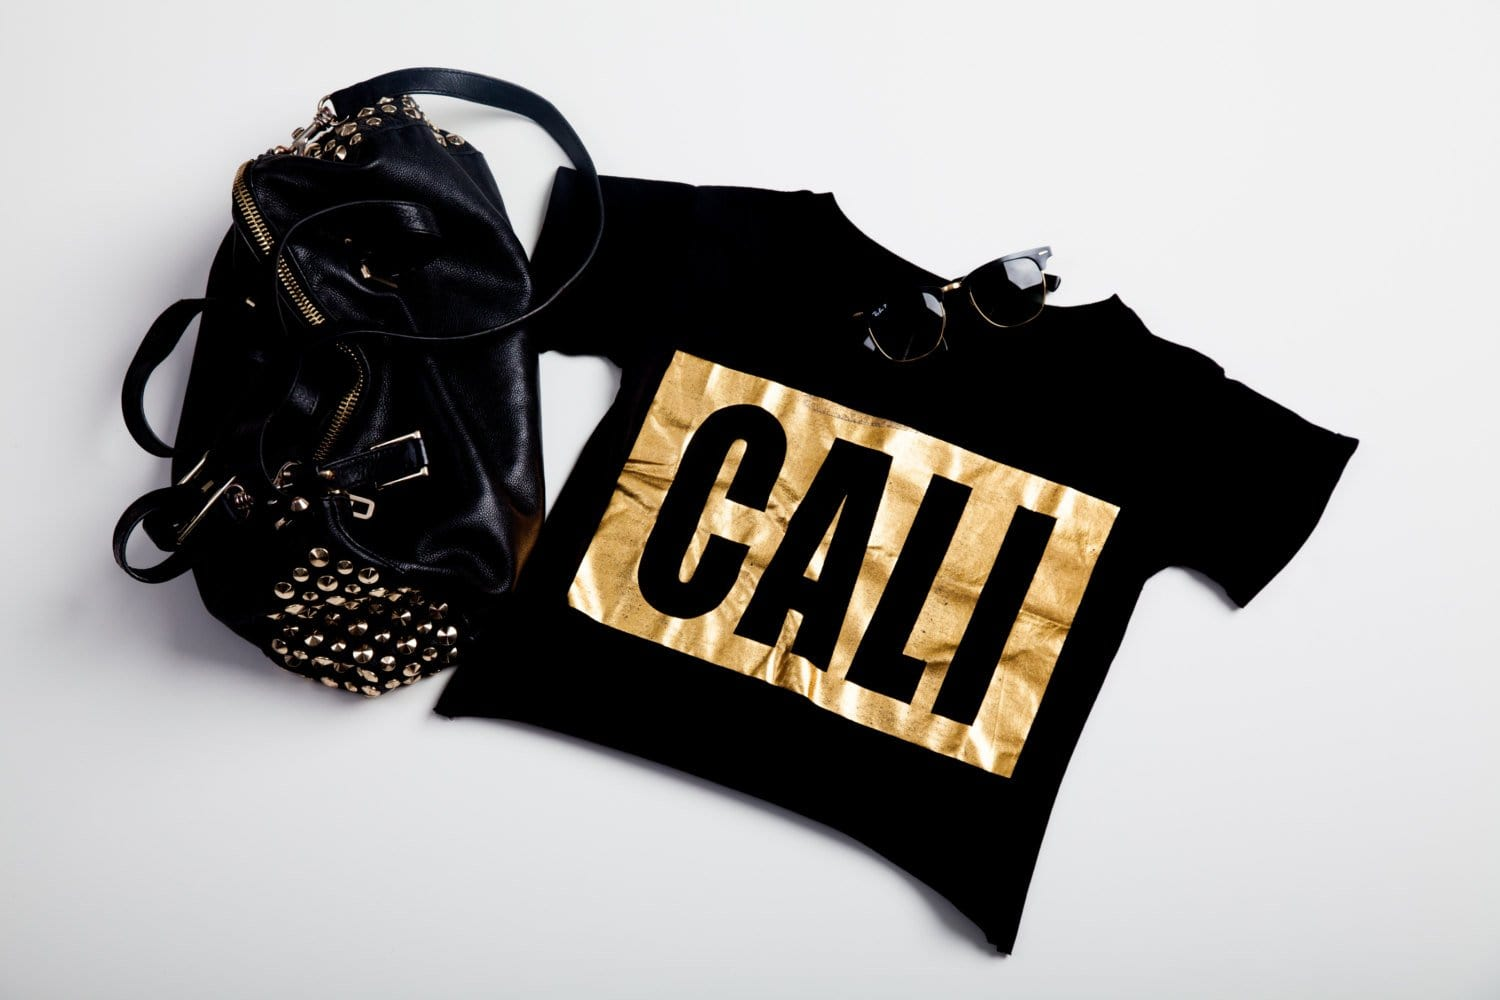 cali gold crop-top tee black tee with gold foil graphic - Cali Diamond